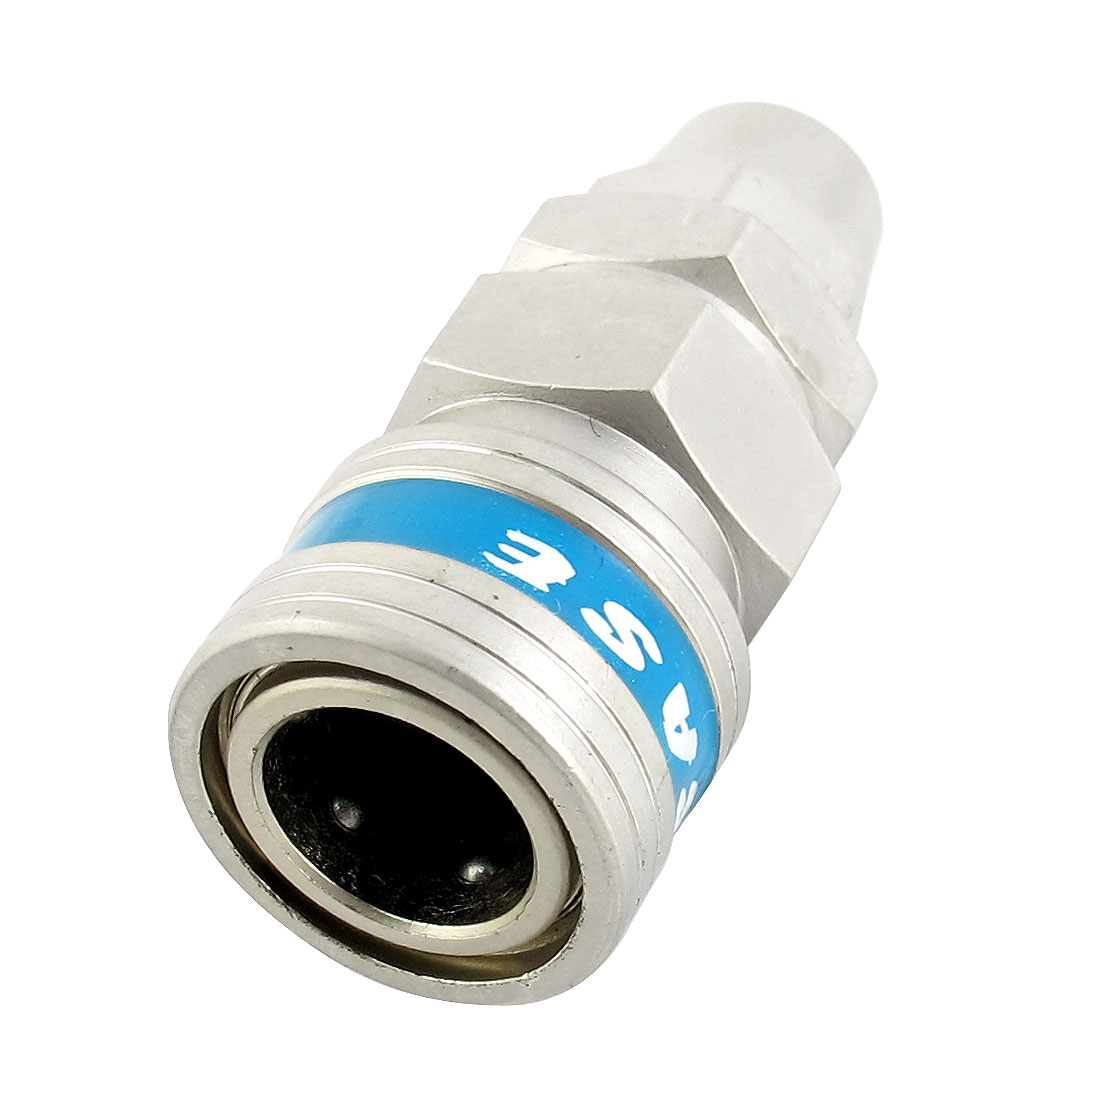 SP30 7mm x 10mm Tube Silver Tone Alloy Air Pneumatic Quick Release Fitting Coupler Connector